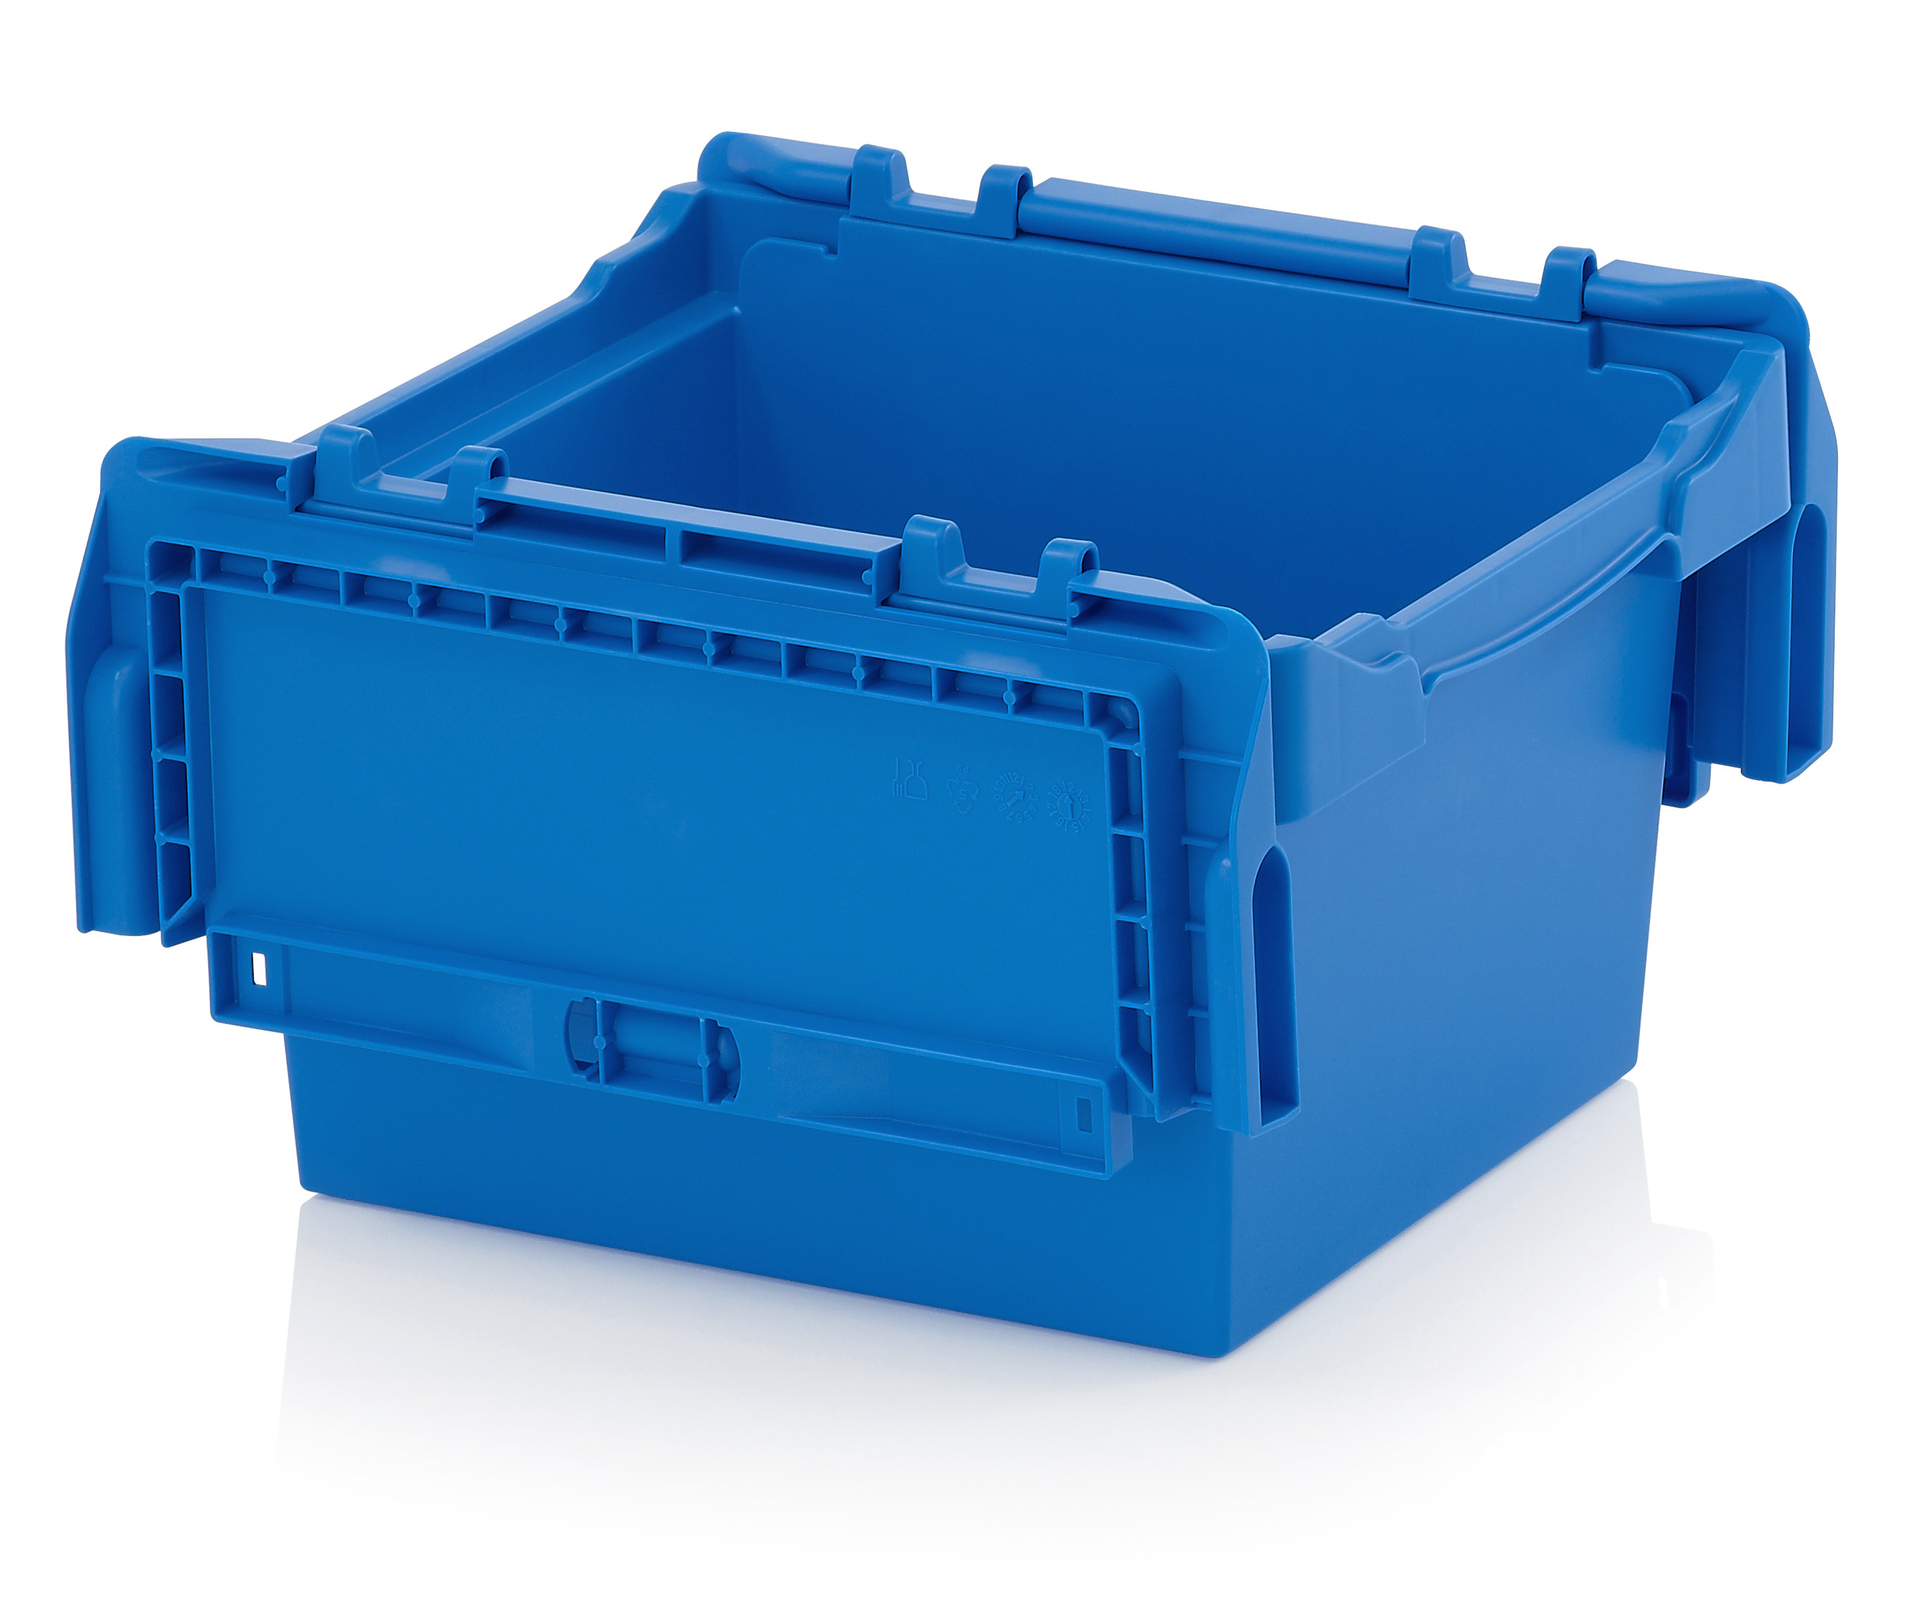 RC4220L_3 Reusable Containers - Plastic Mouldings Northern